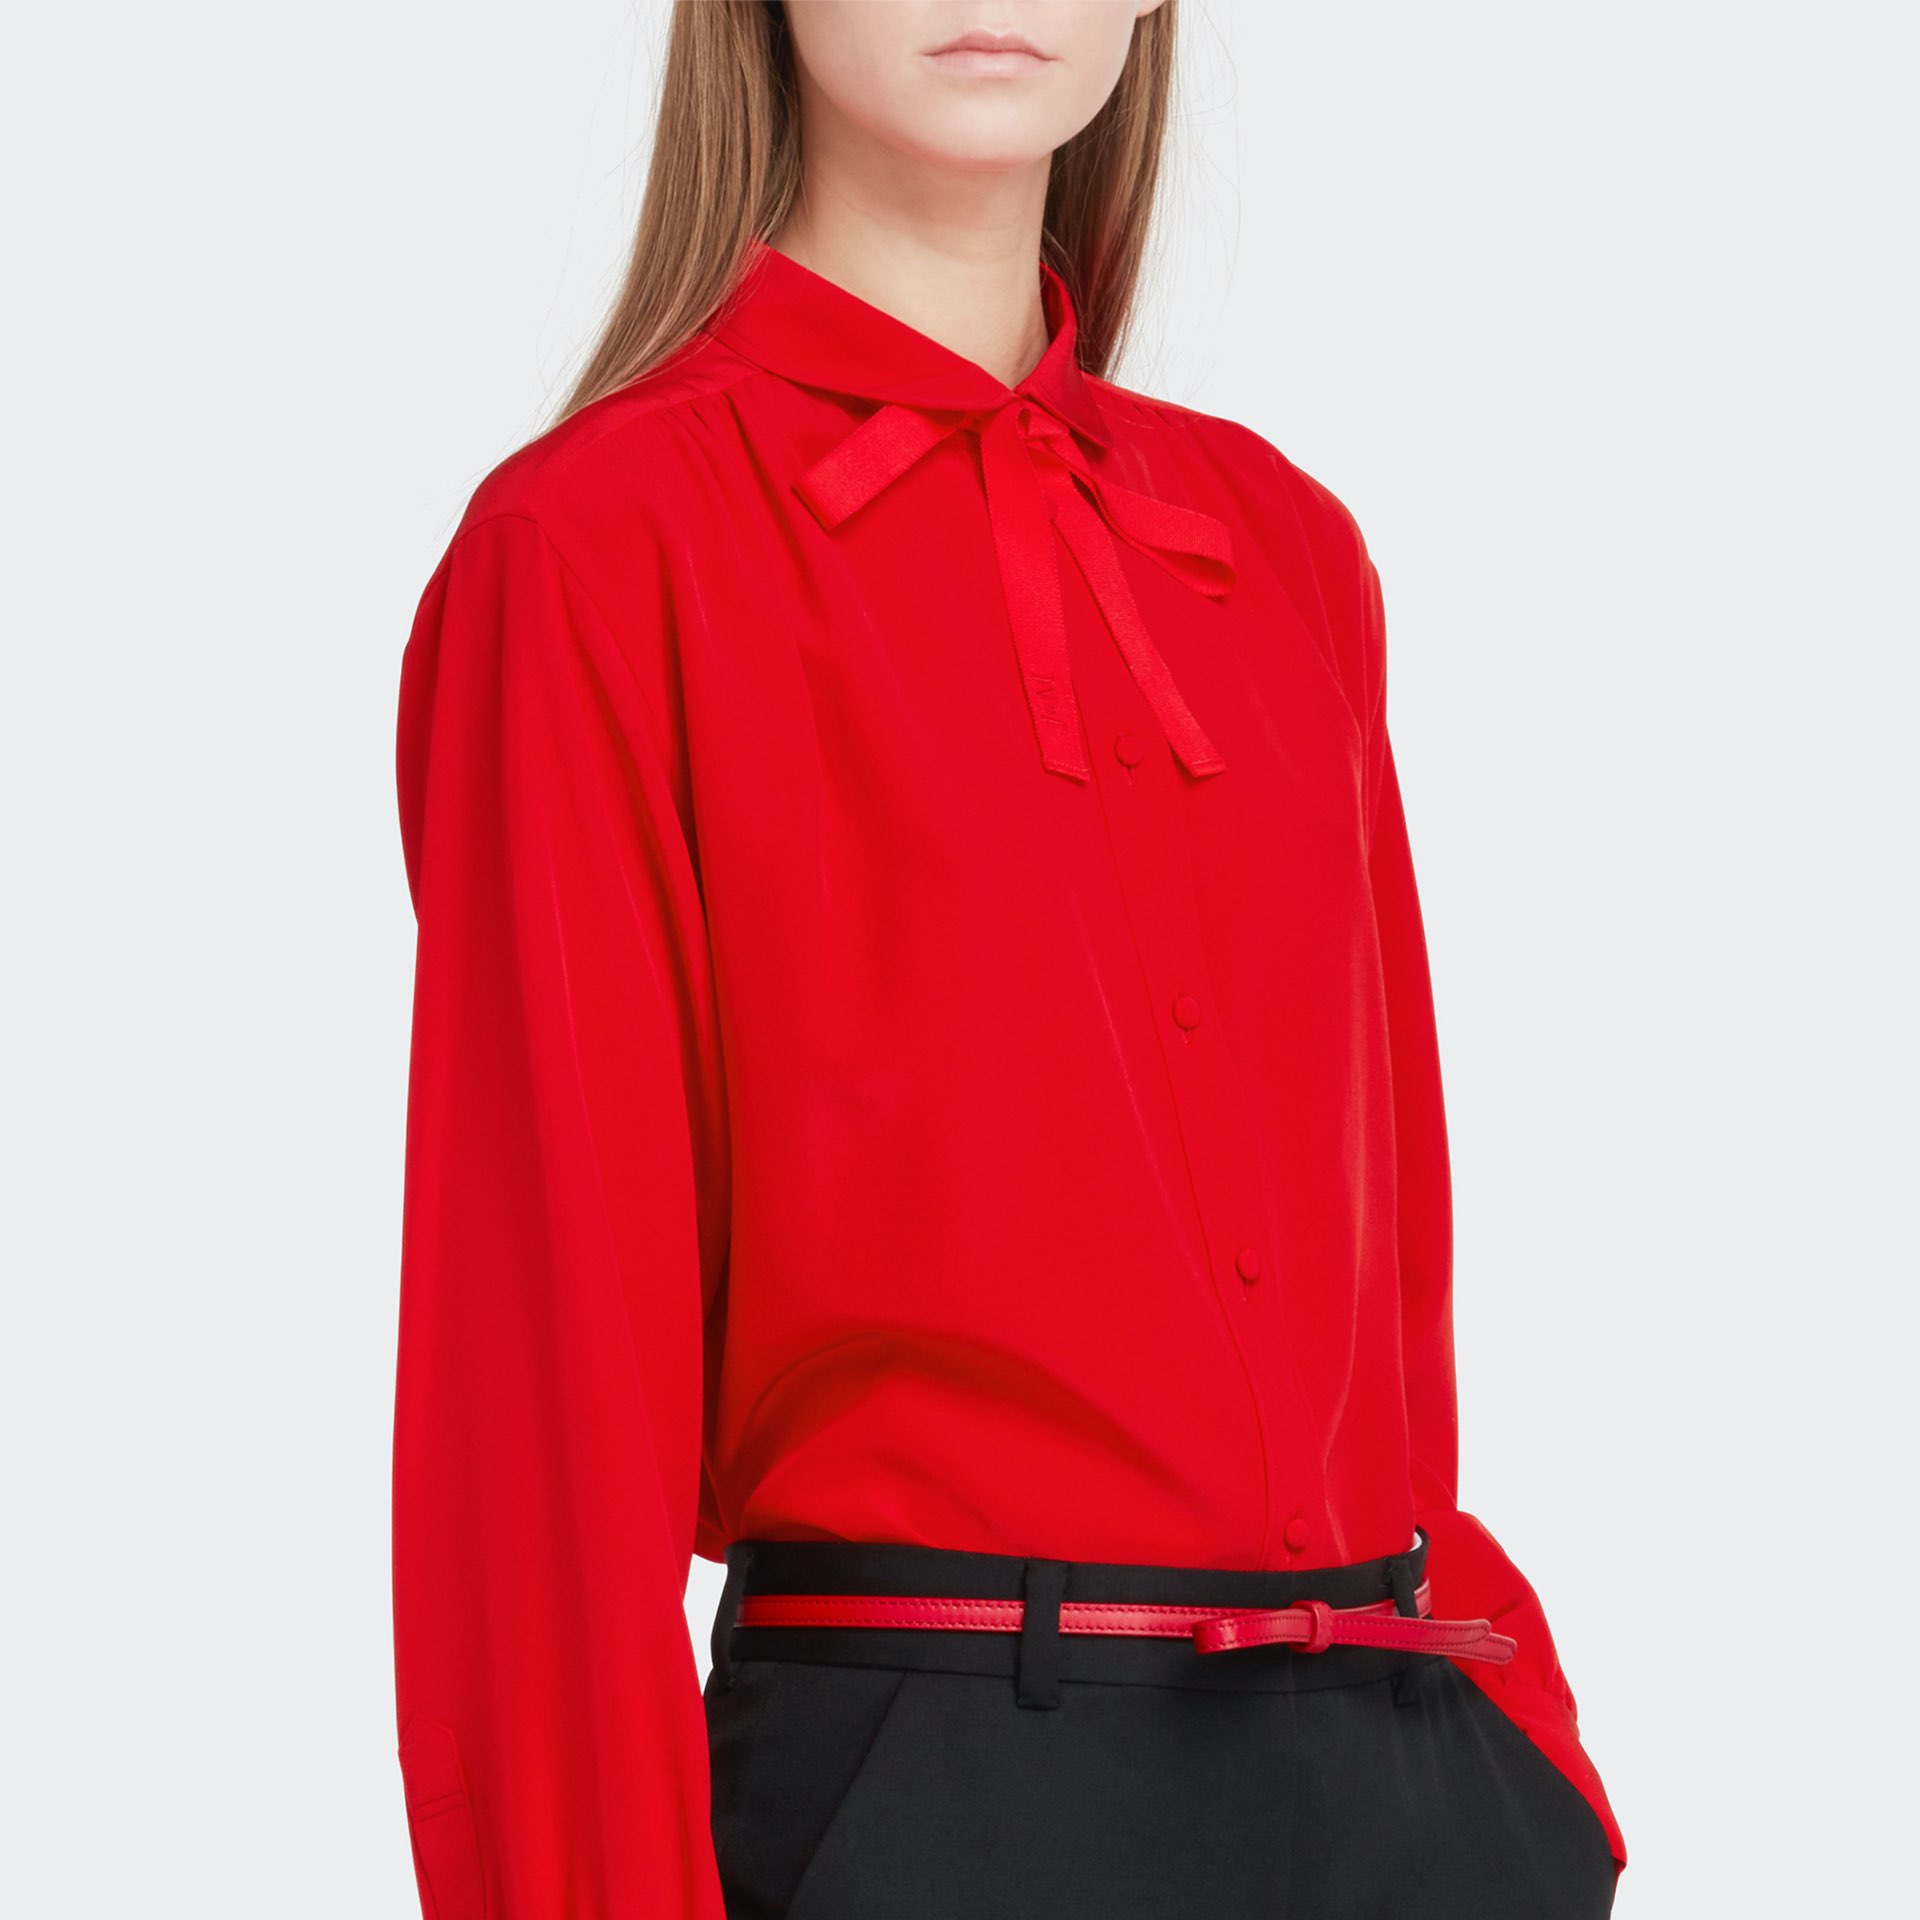 womenswear model wearing bright red shirt, red belt and black trousers